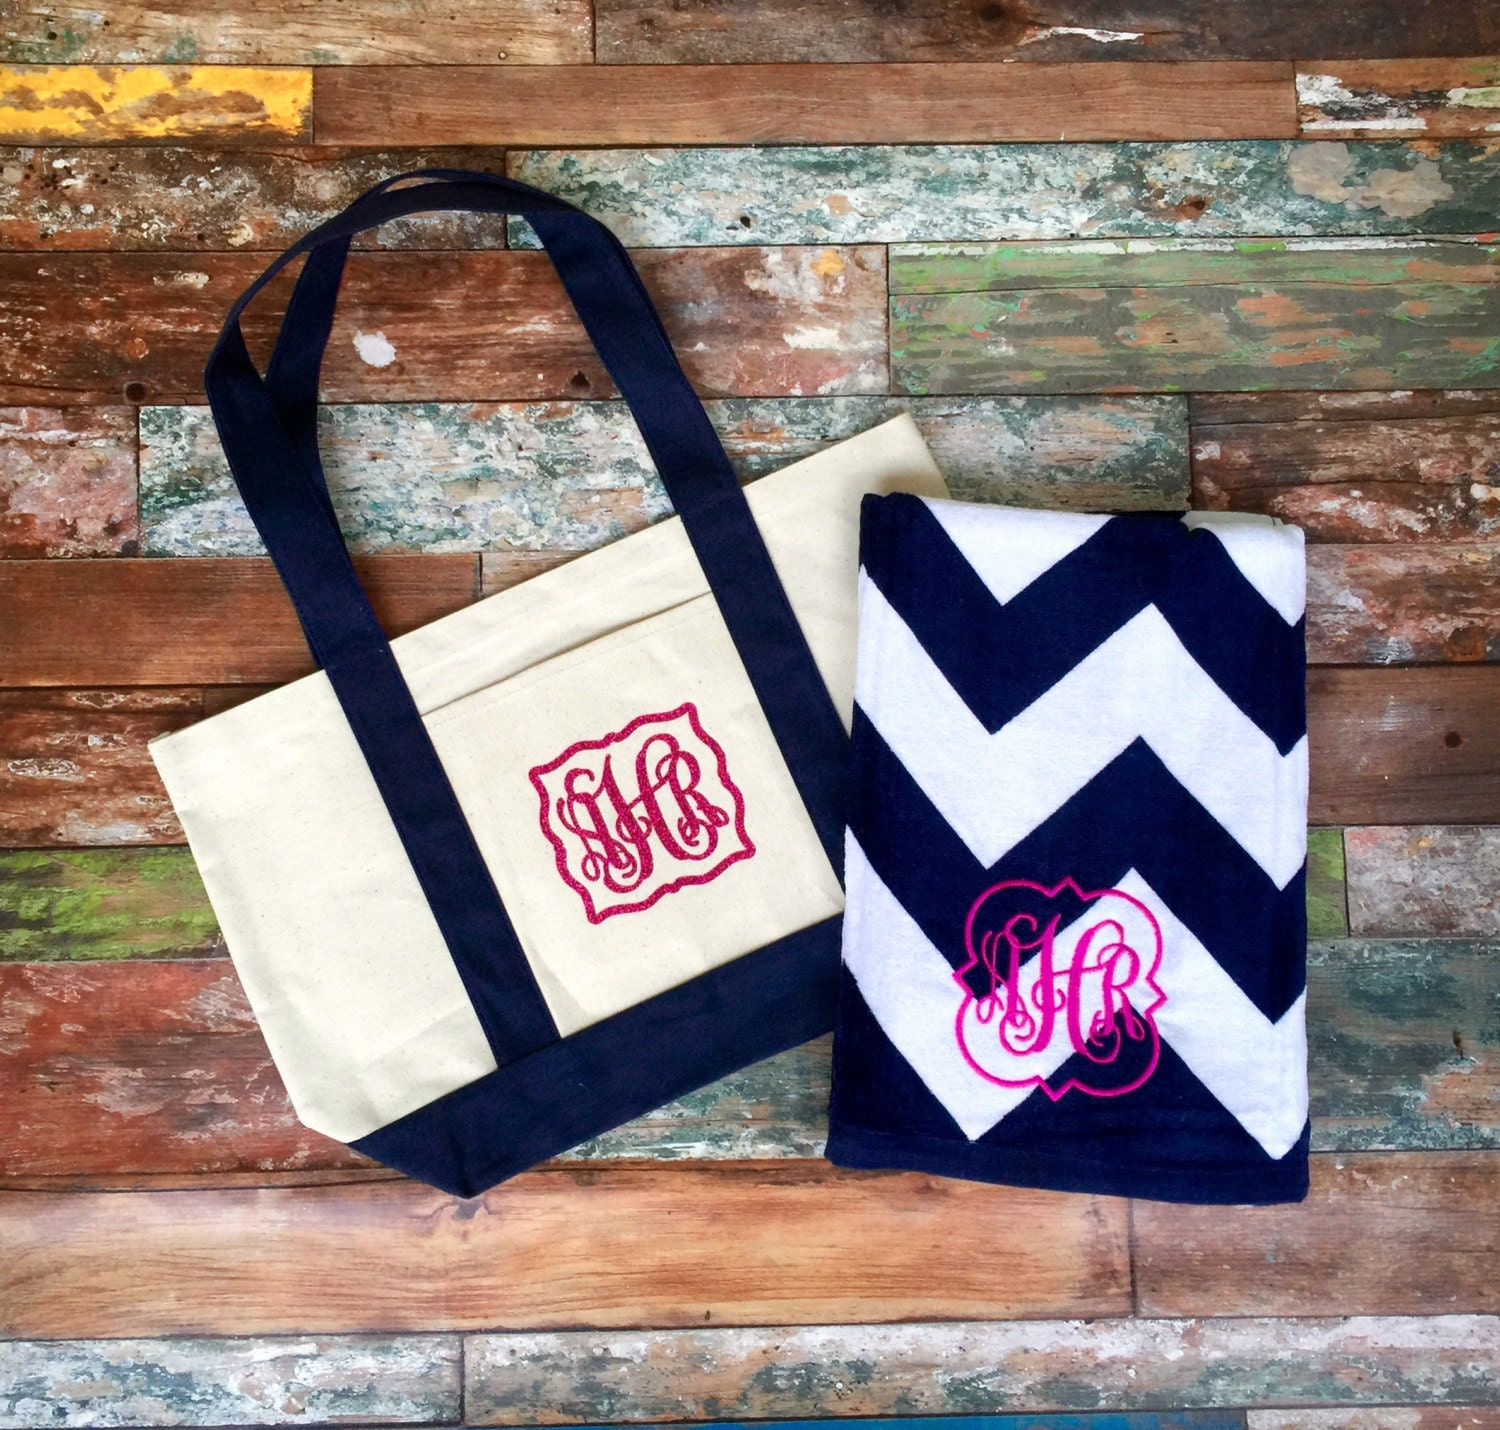 Monogrammed Beach Towel And Bag Set: Monogrammed Beach Towel Matching Beach Bag, Monogram Beach